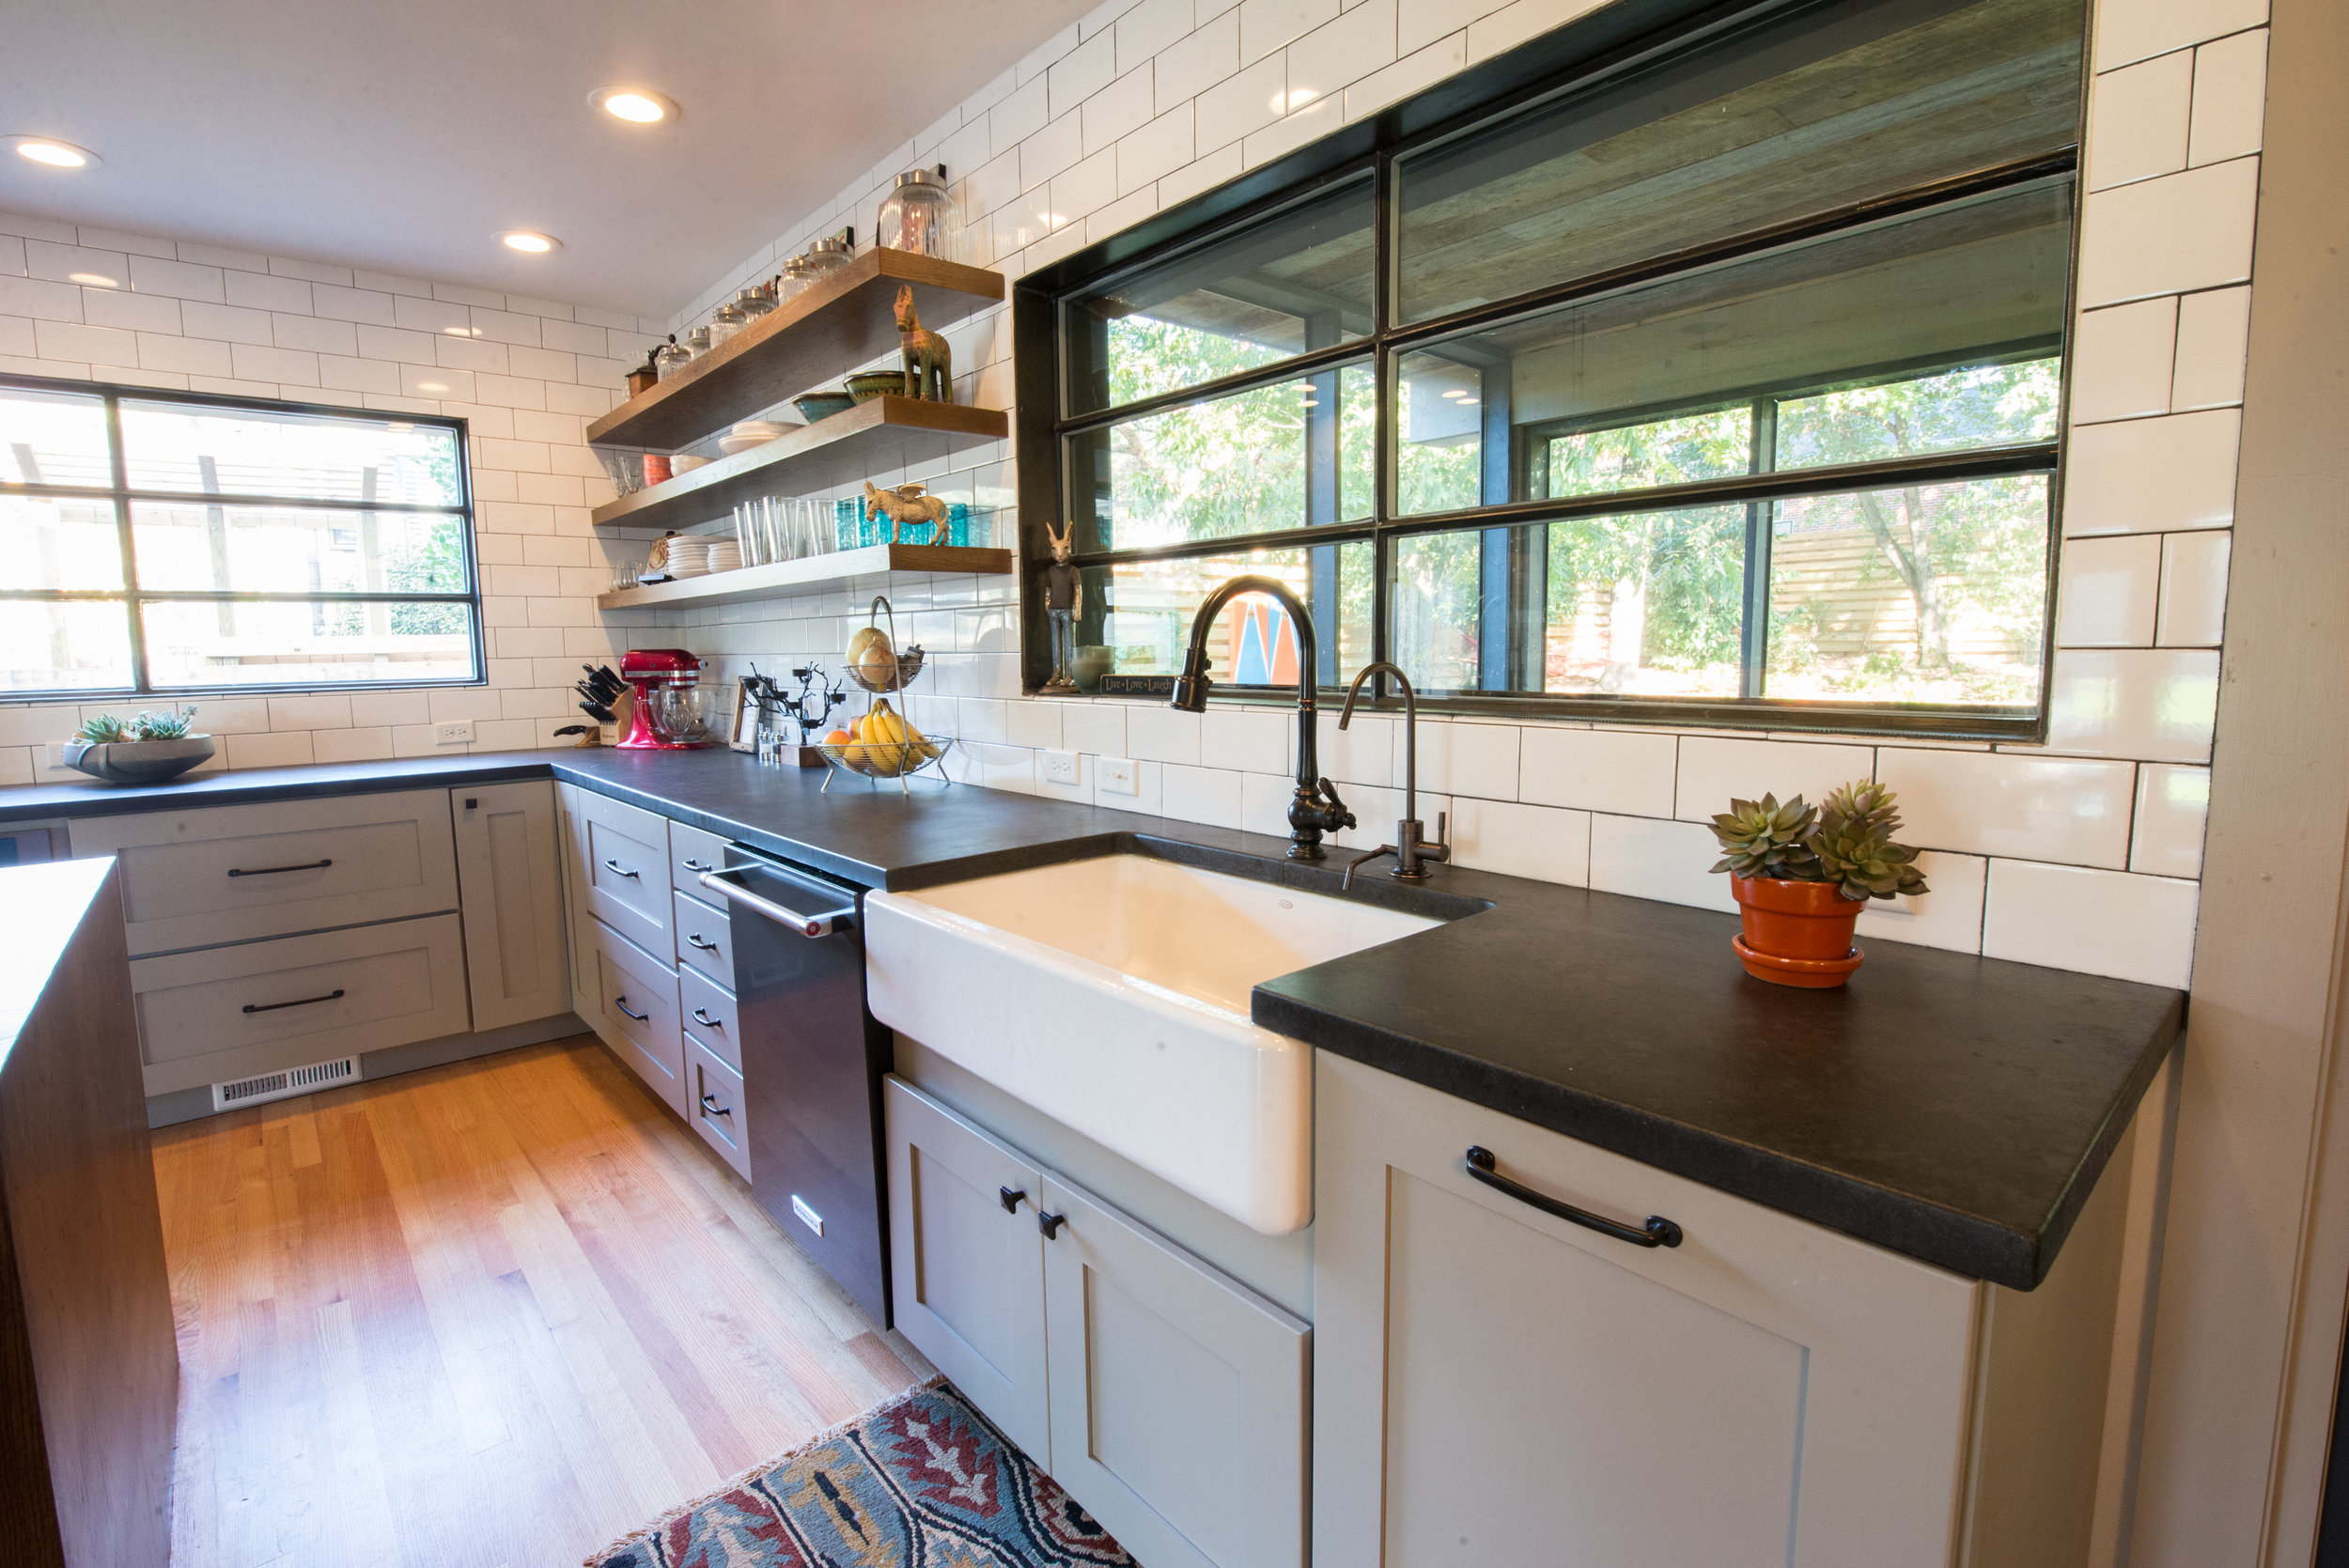 Black concrete offers an elegant counterpoint to the oversized subway tile an farmhouse sink in this kitchen.  #residential